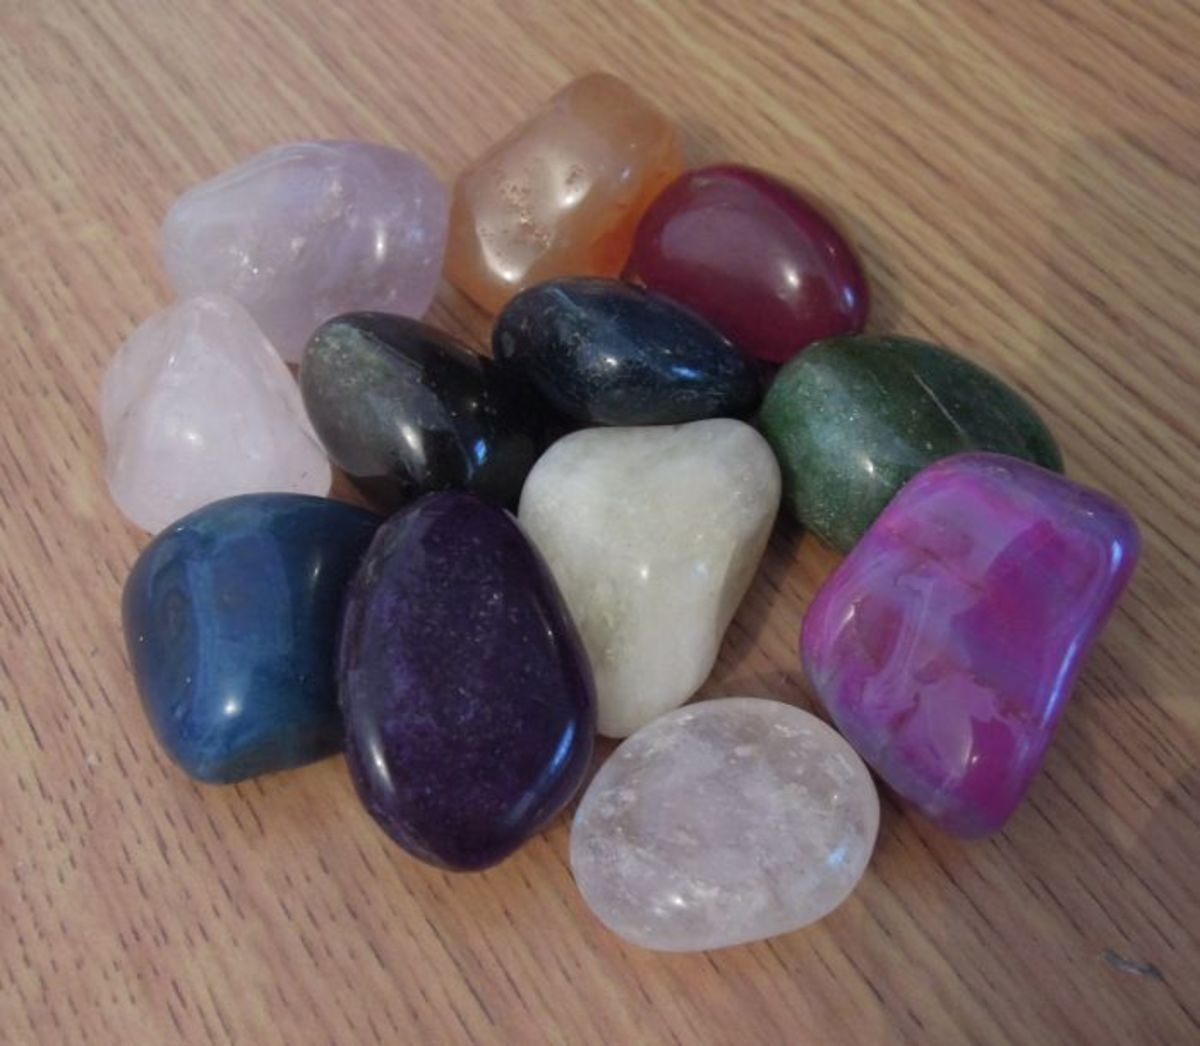 A selection crystals recharged and ready for healing, magic or energy work.